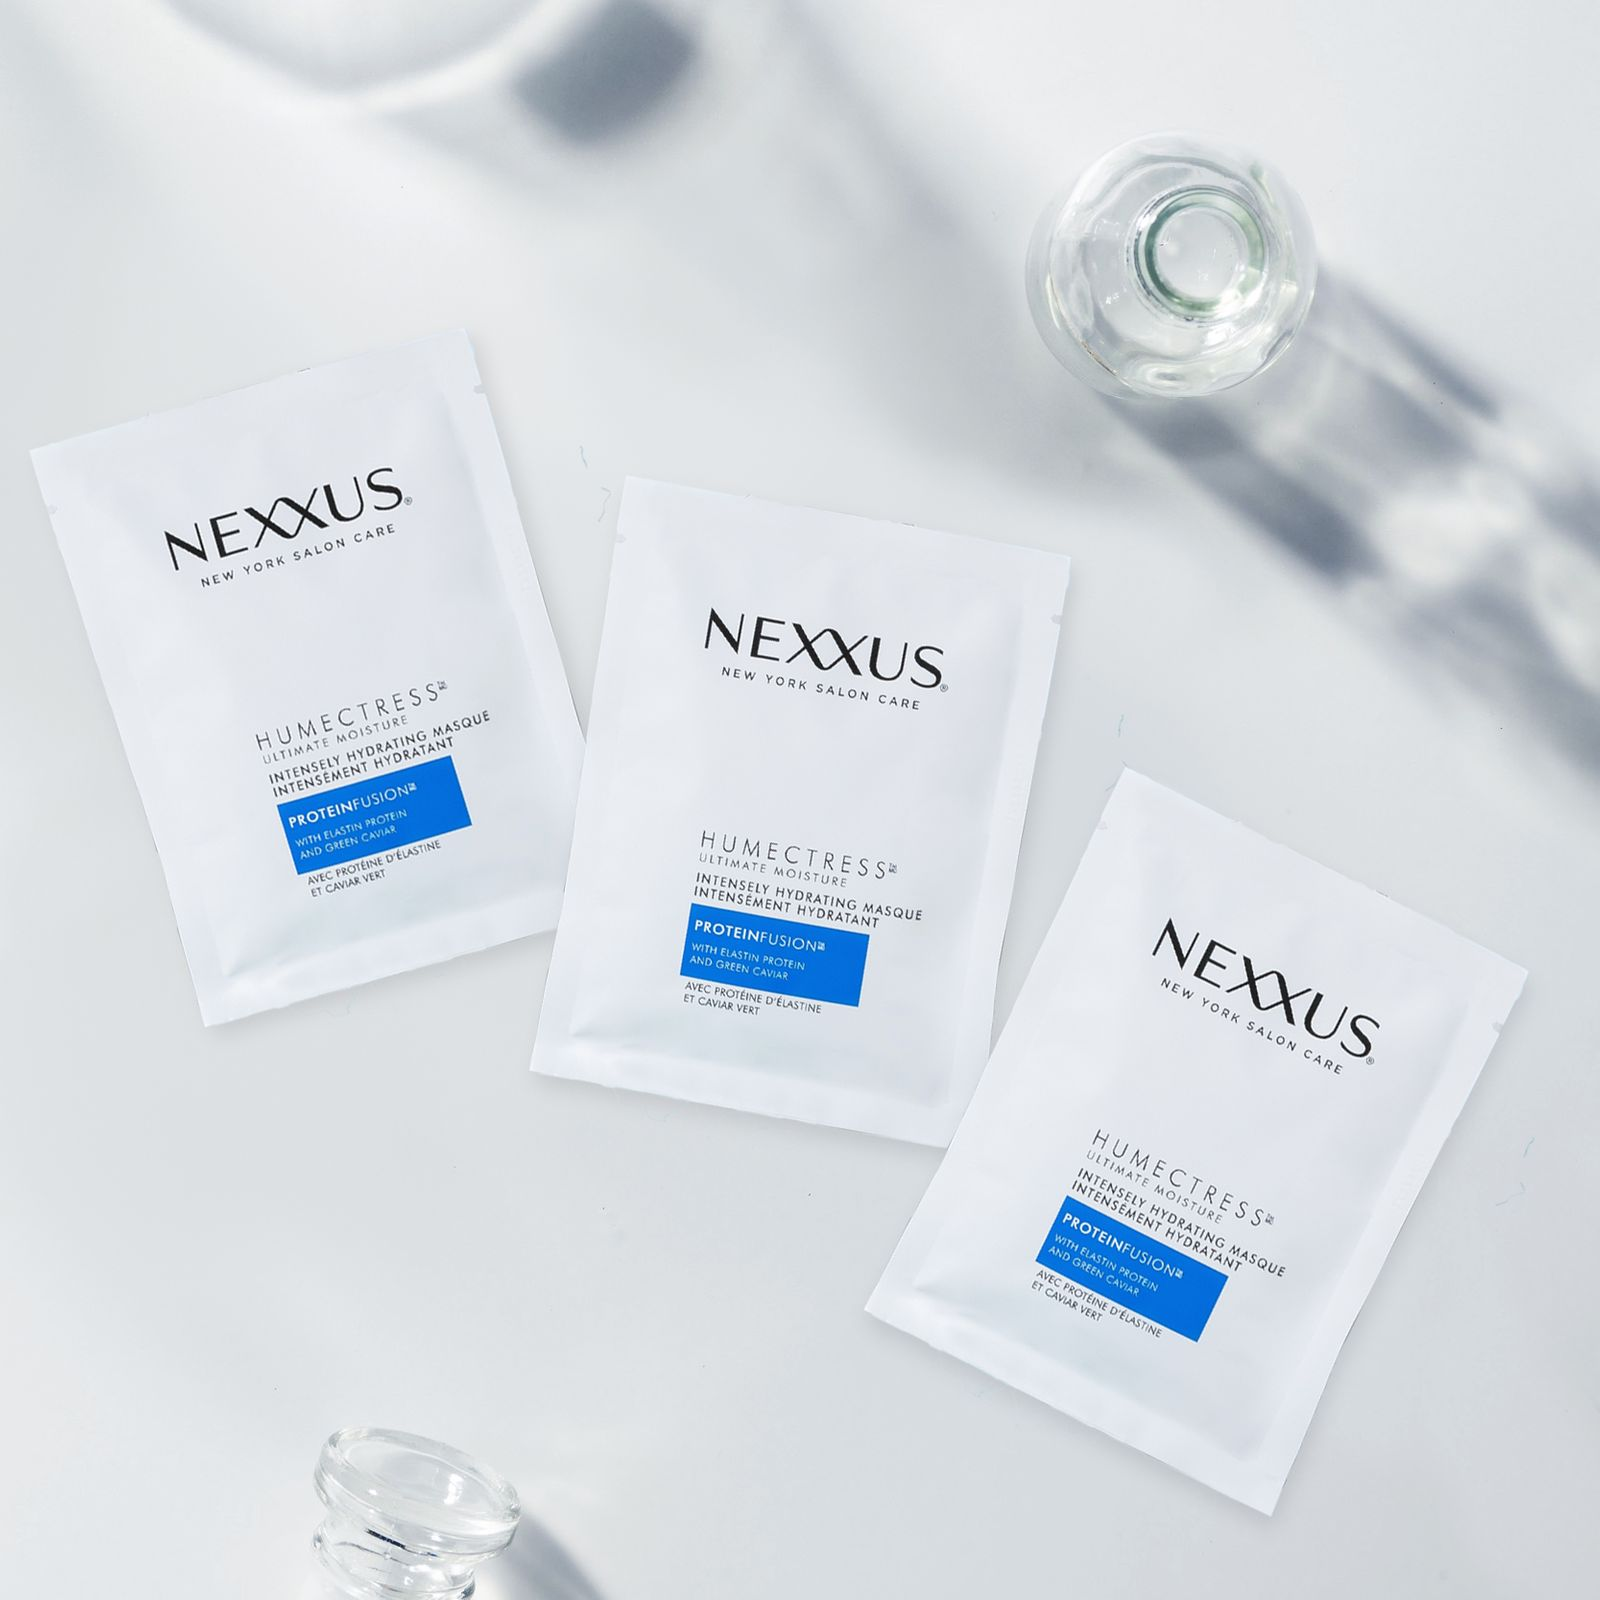 Nexxus Humectress Moisture Hair Mask Product Shot